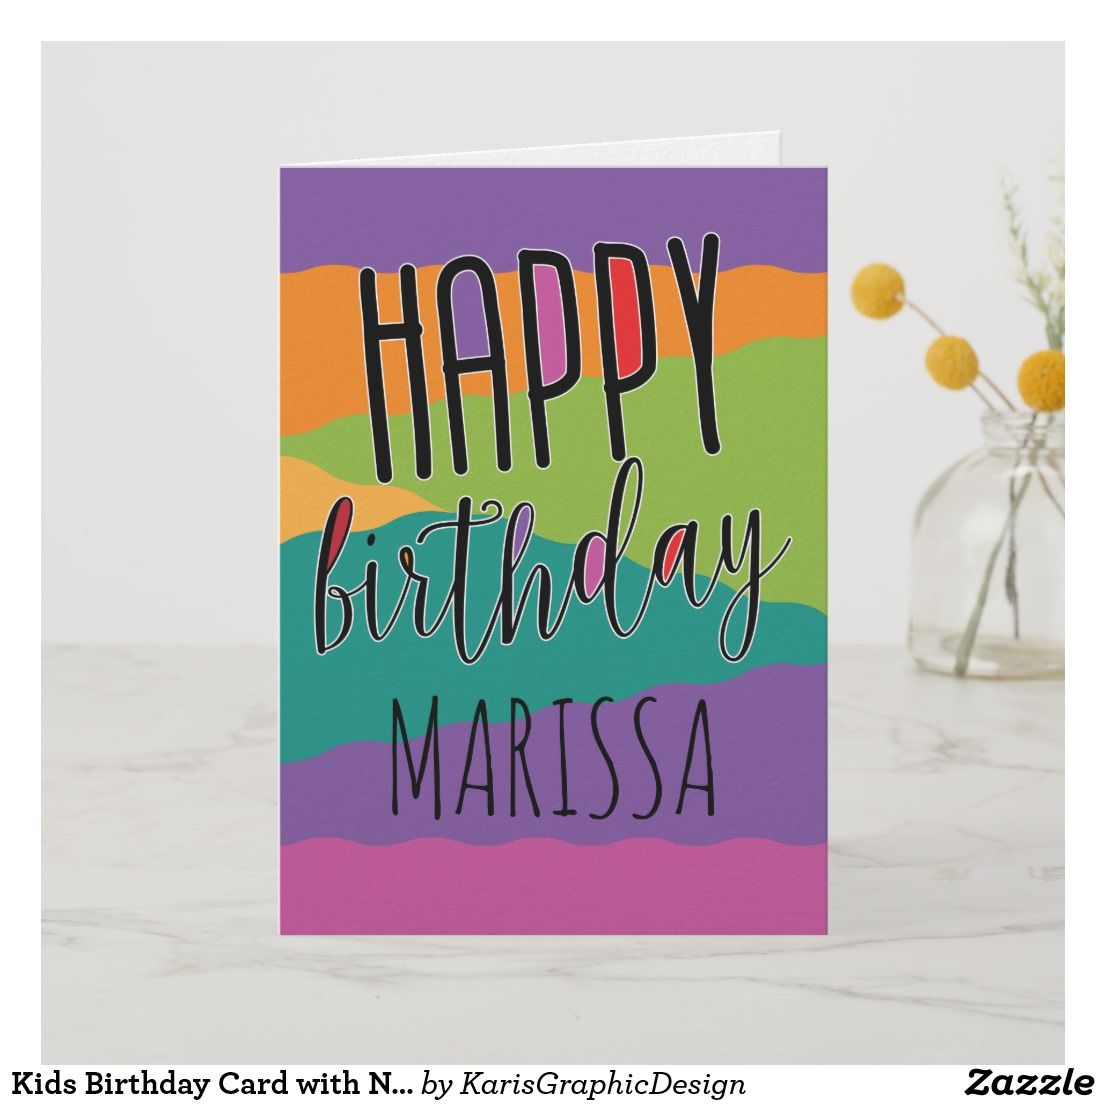 Kids birthday card with name birthday cards gifts cakes